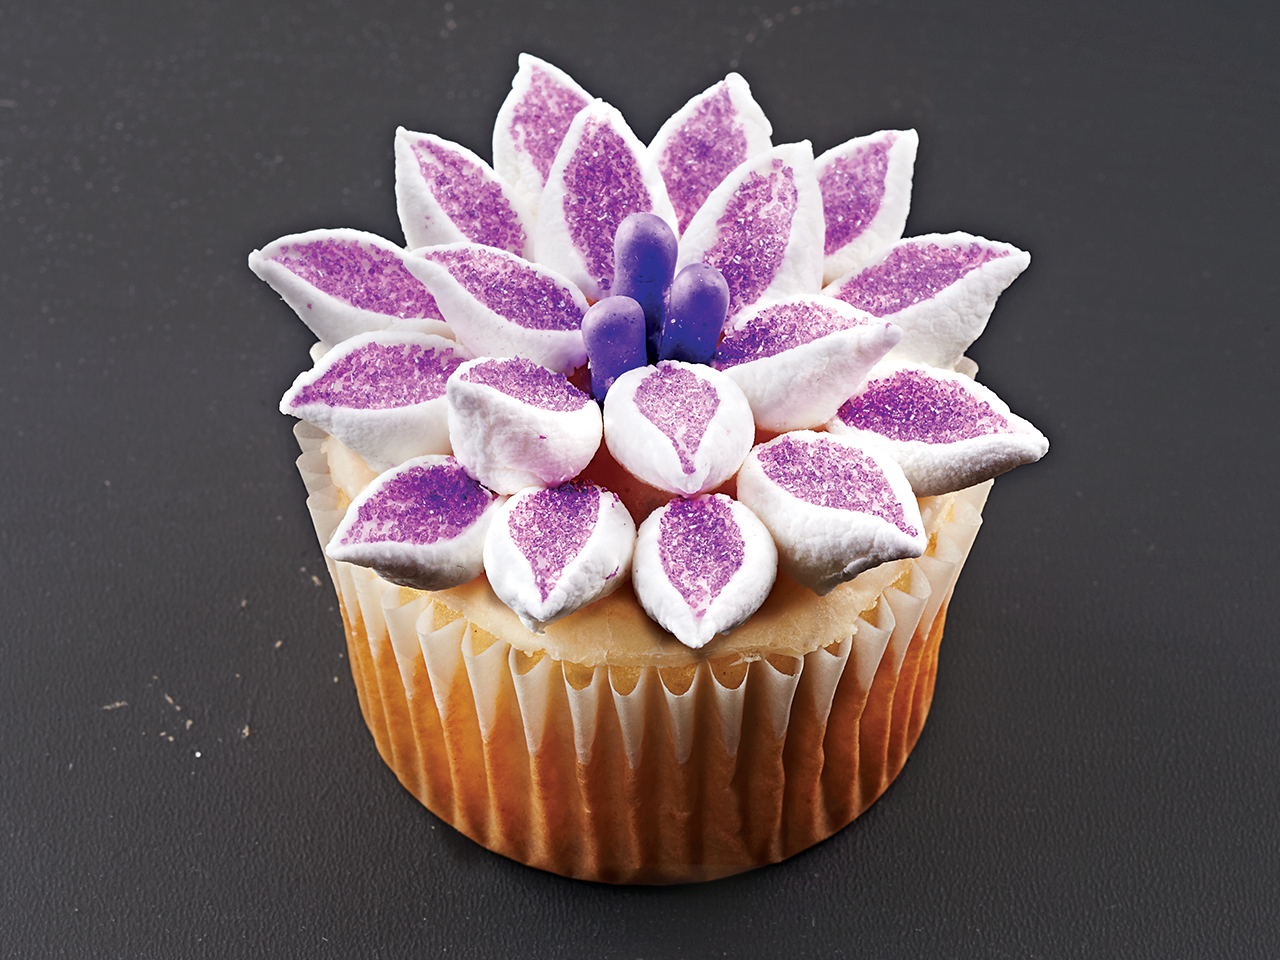 Cupcake decorating ideas: Flower (how-to video) - Video ...